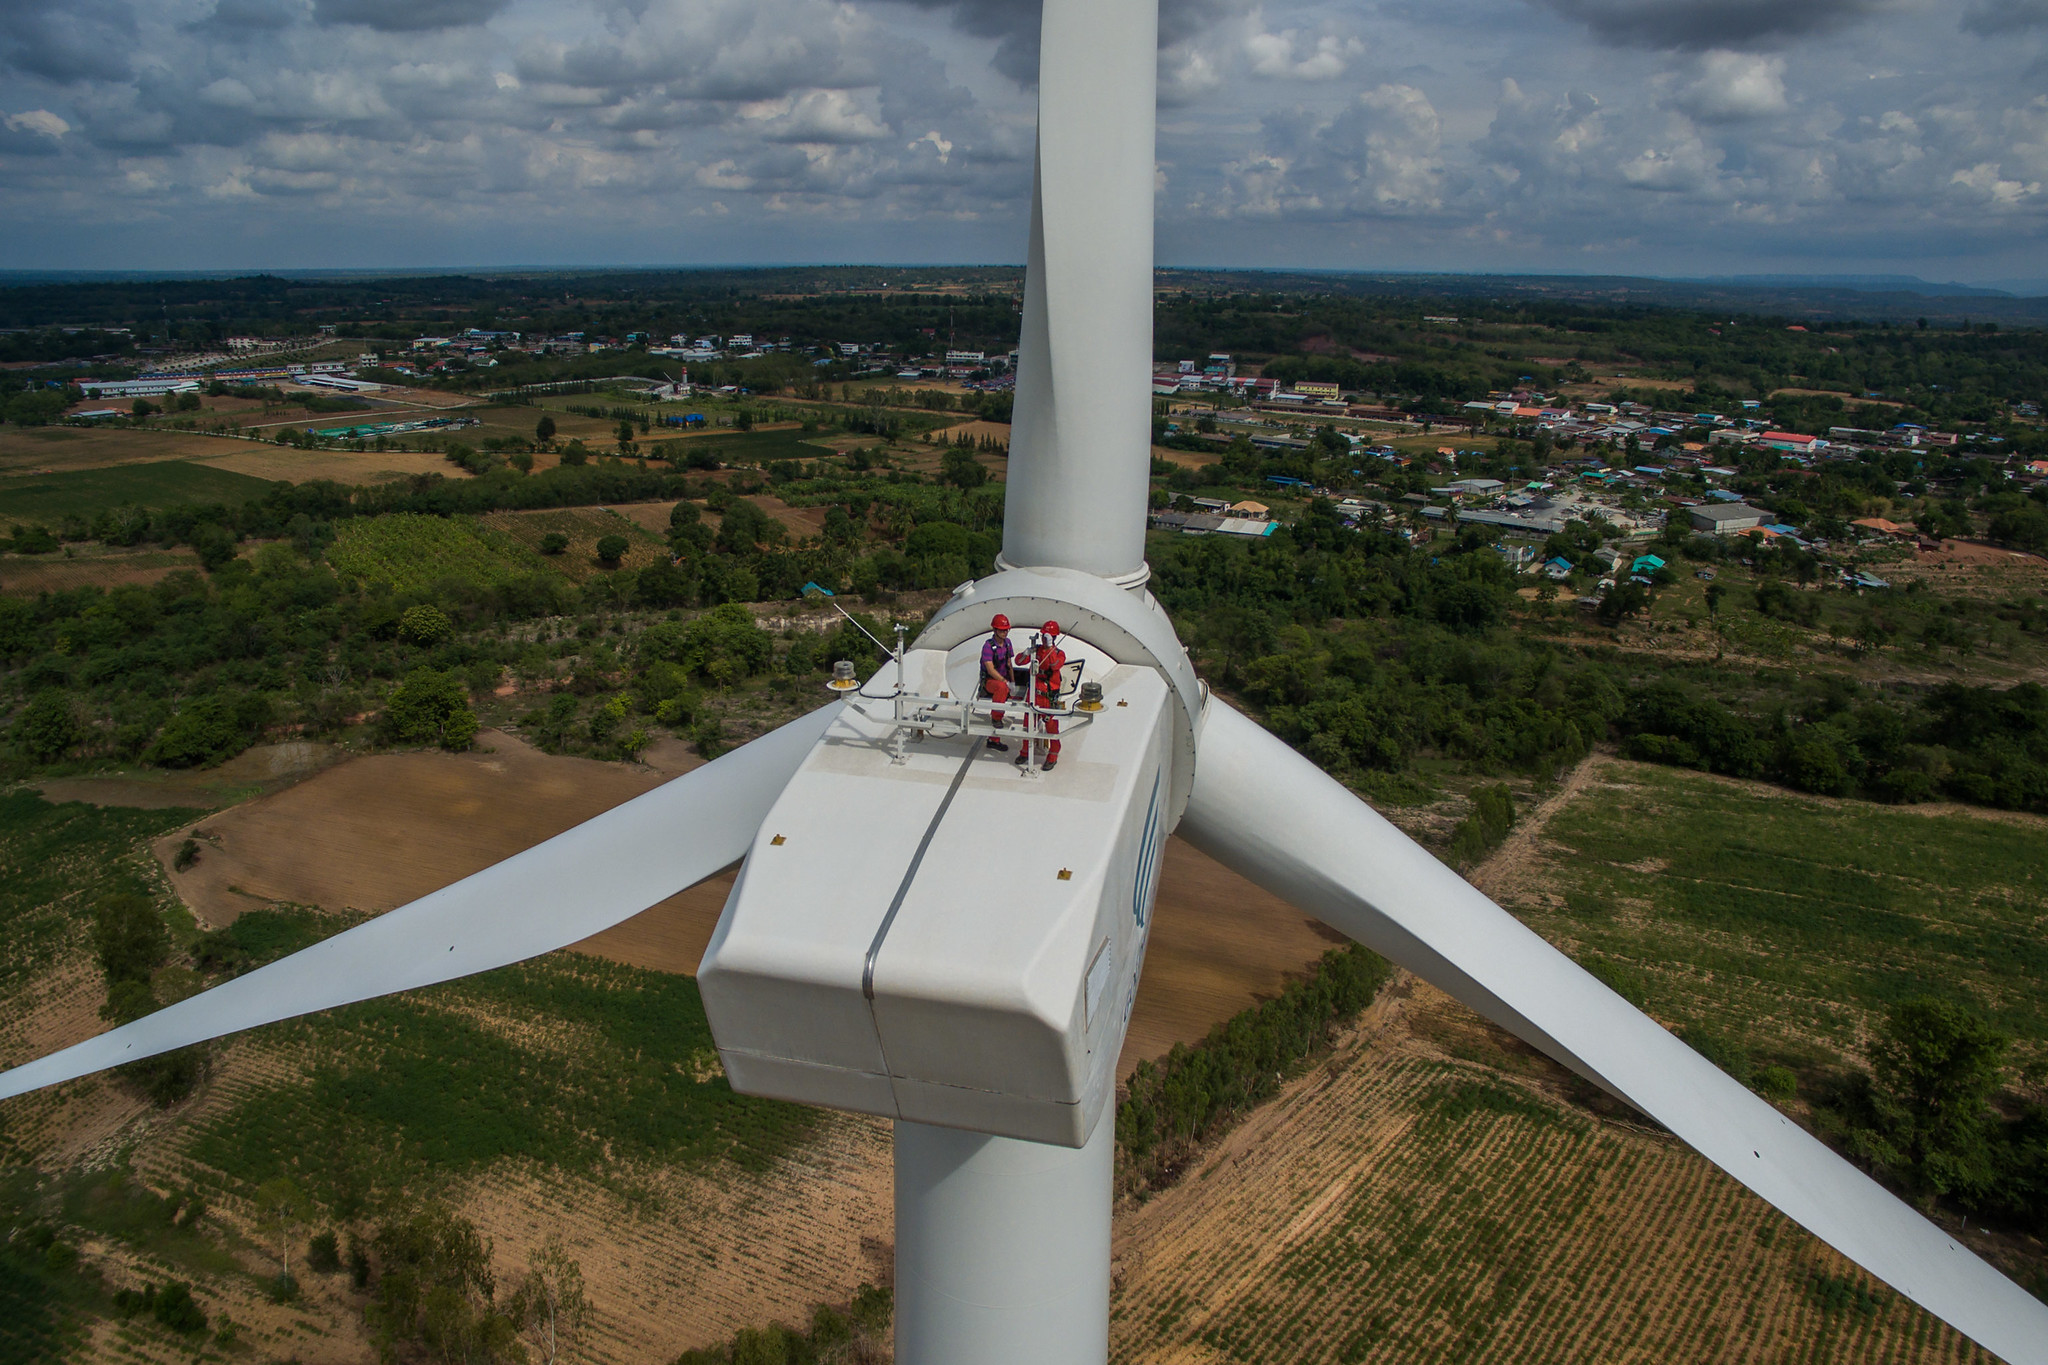 <p>Clean energy developments like this wind farm in Thailand can create jobs and help countries build back better after COVID-19. Photo by Asian Development Bank.</p>